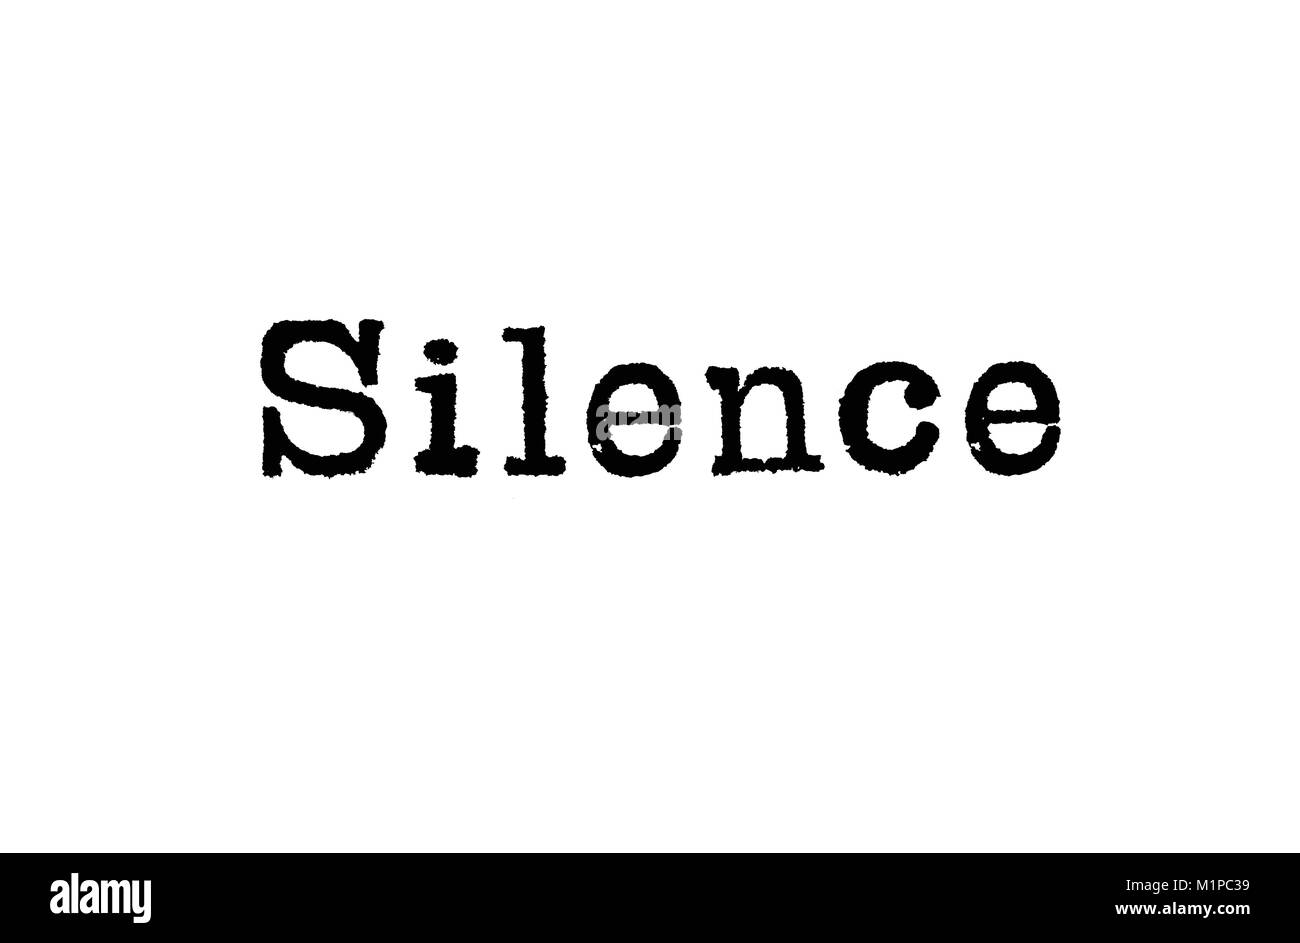 The word Silence from a typewriter on a white background - Stock Image